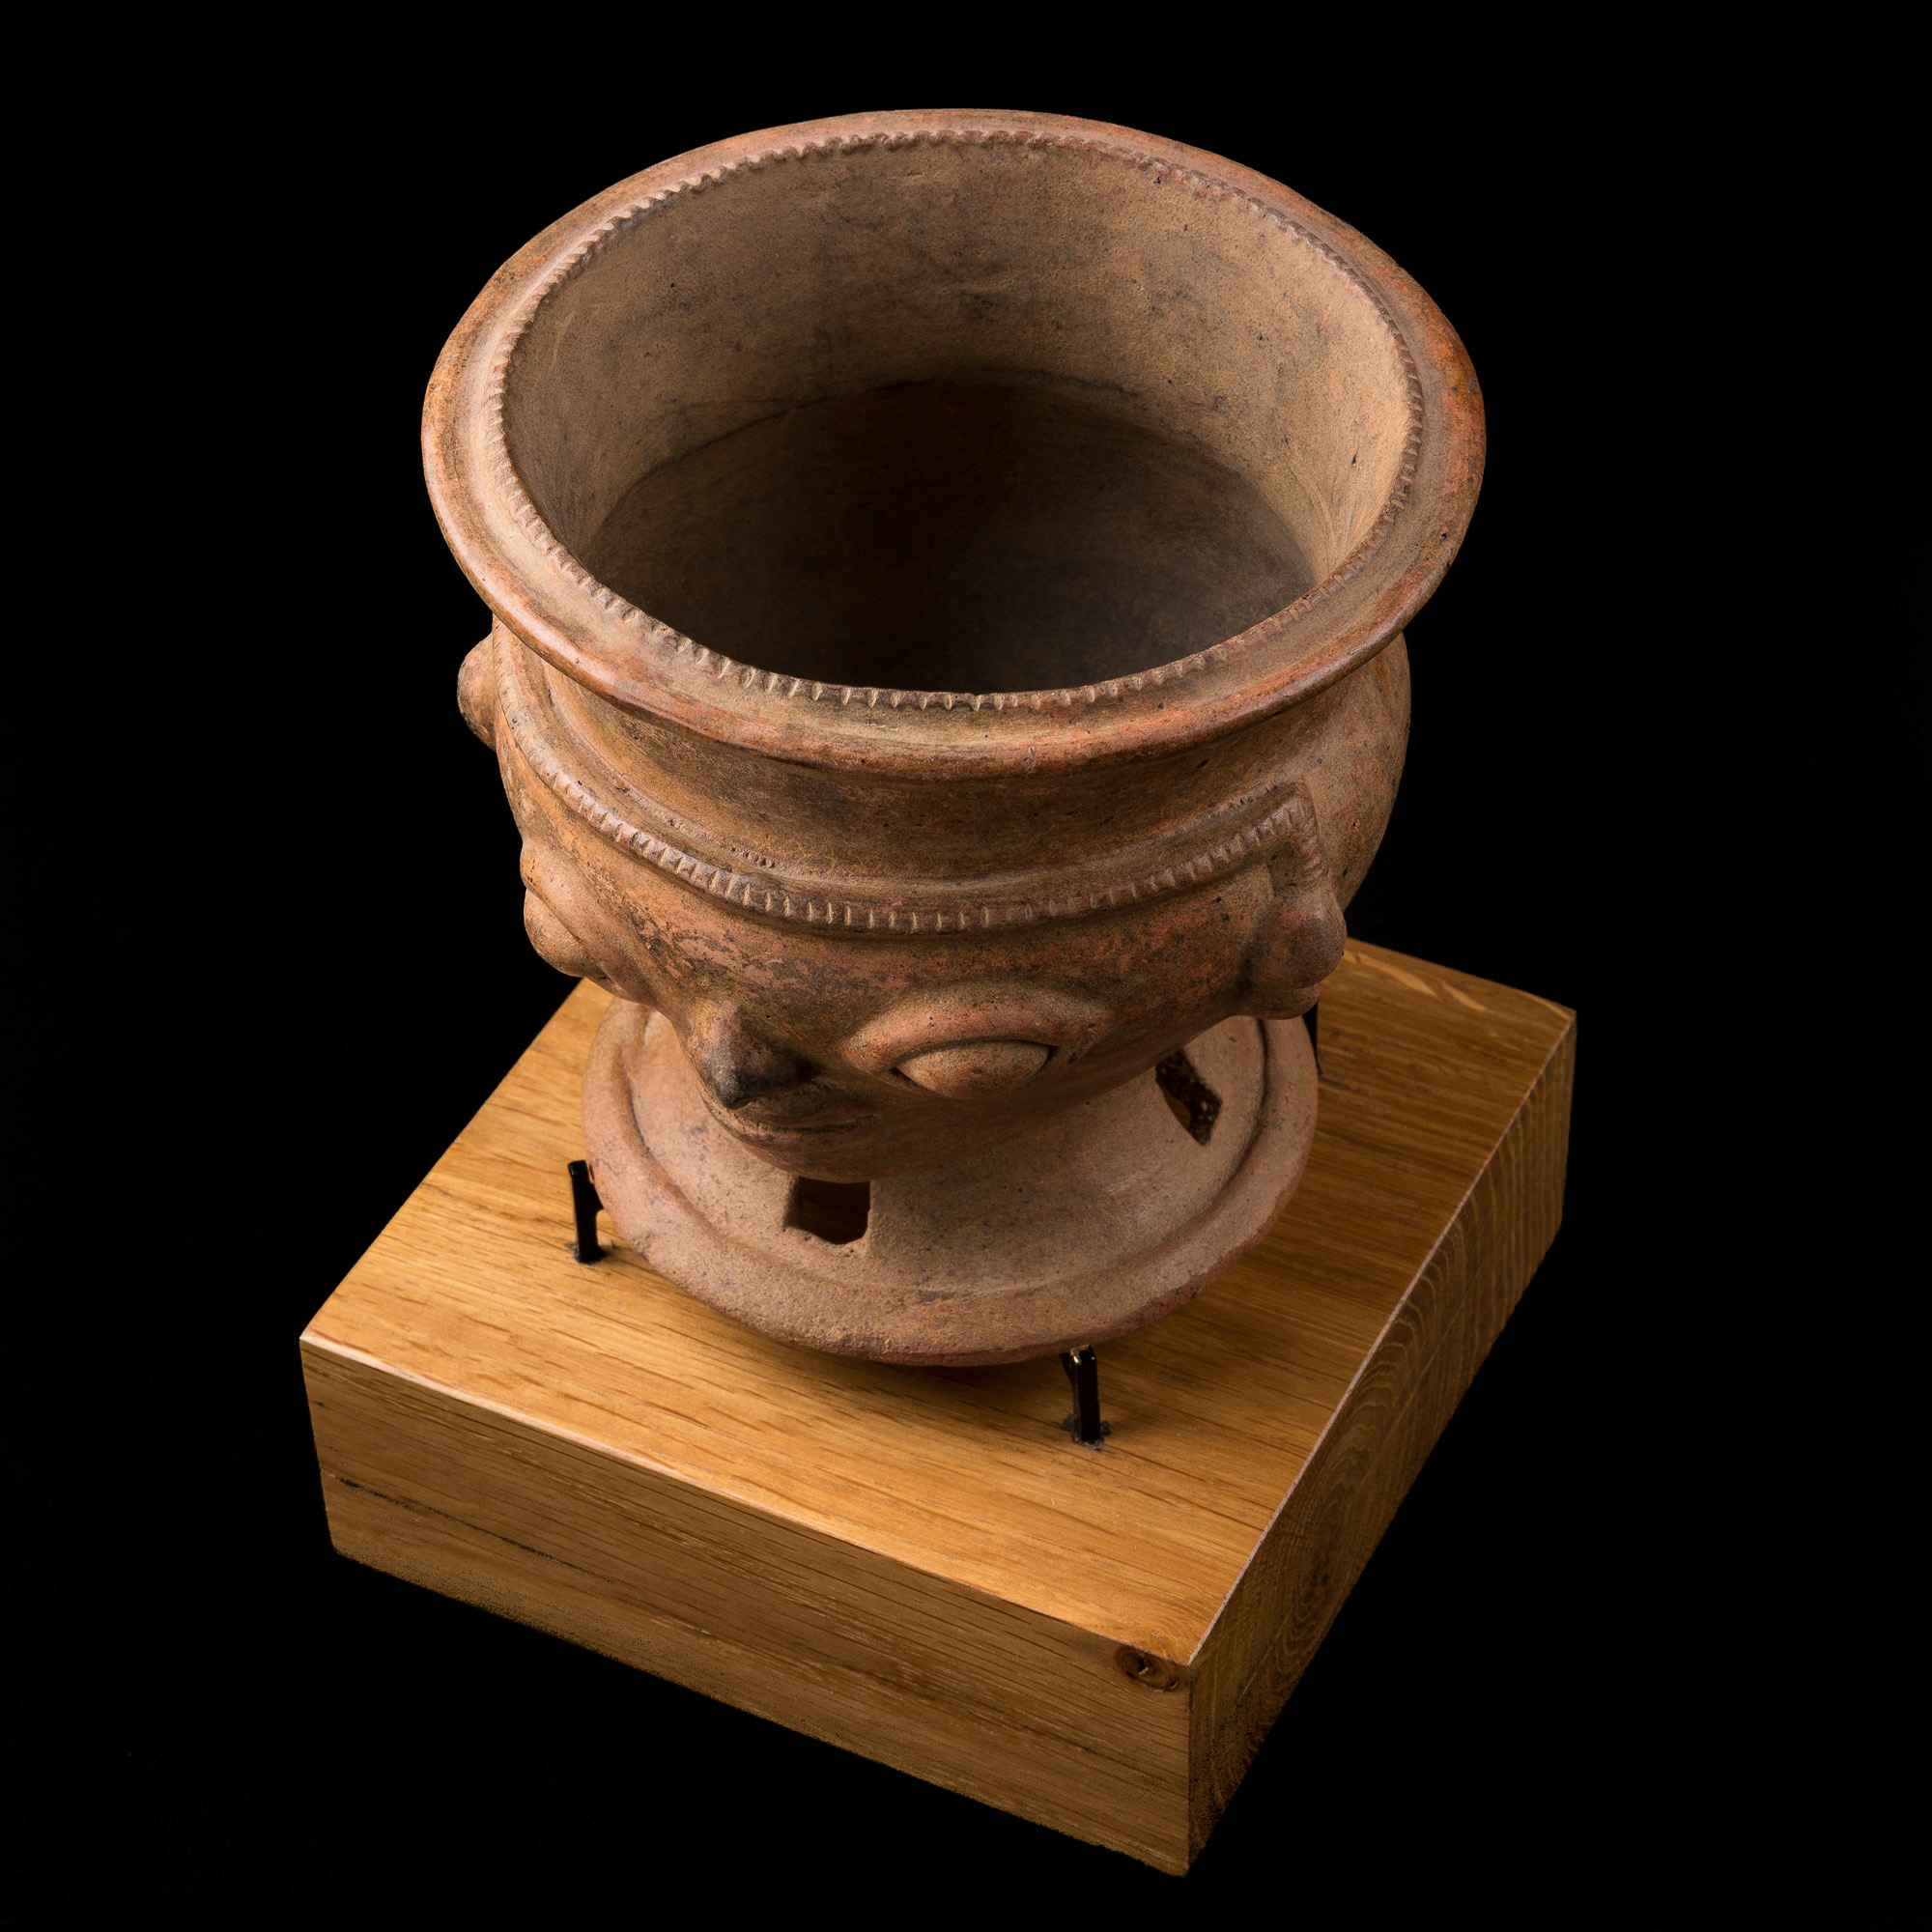 Photo of NARINO CAPULI VASE FROM COLOMBIA